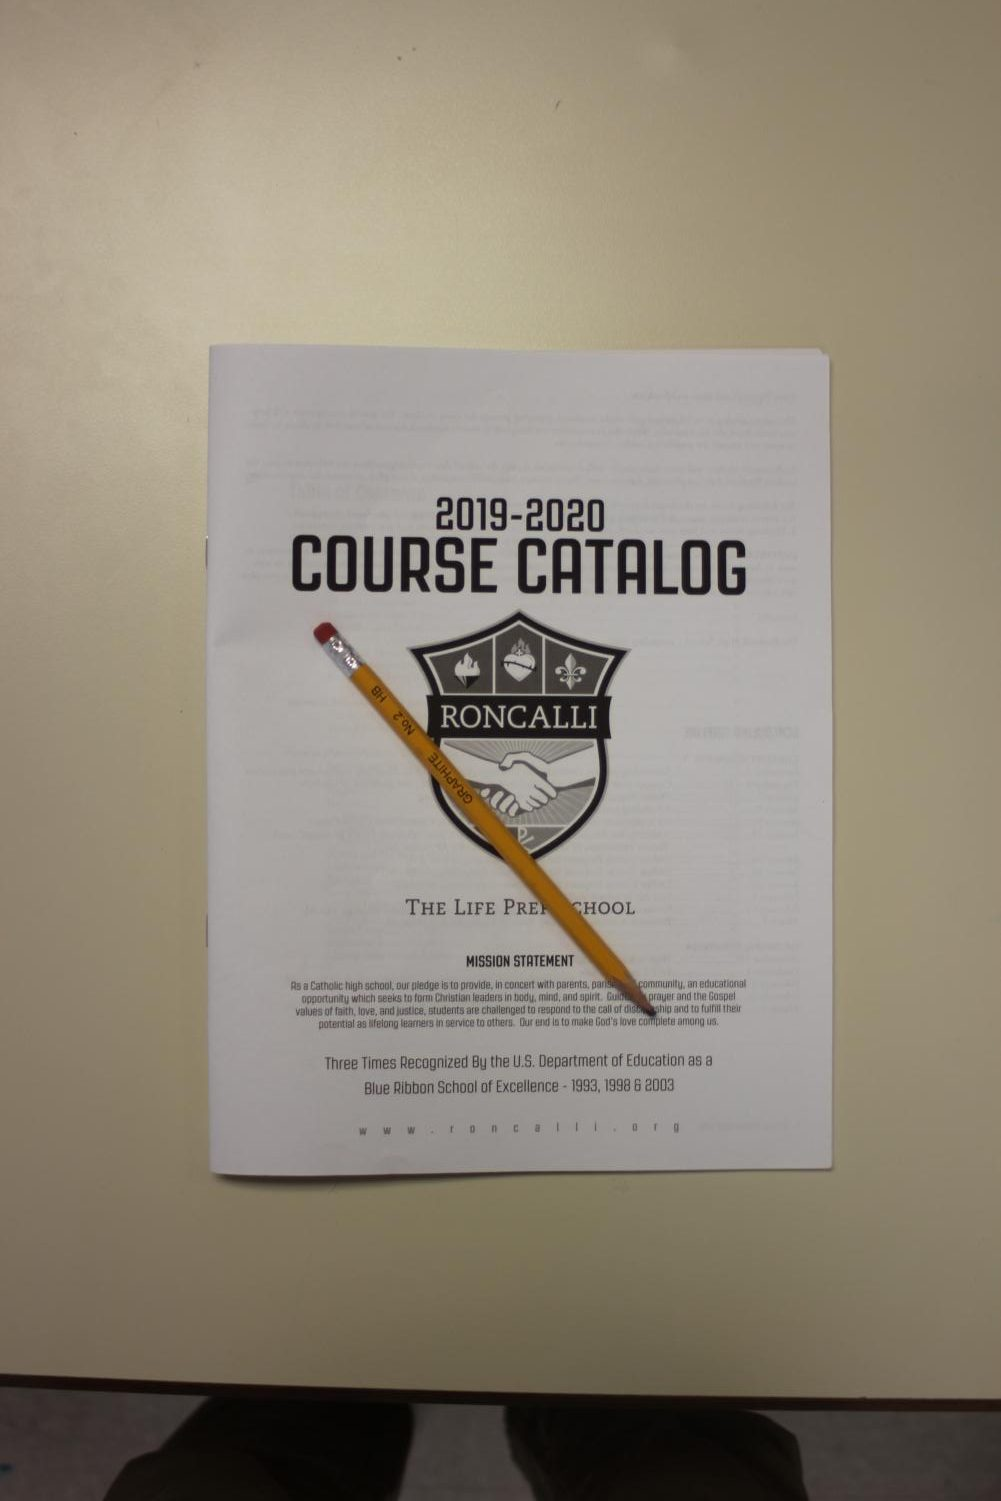 New Additions: The course catalog contains information on classes students can take. Courses such as Physical Science and Fiber arts will be available next school year.